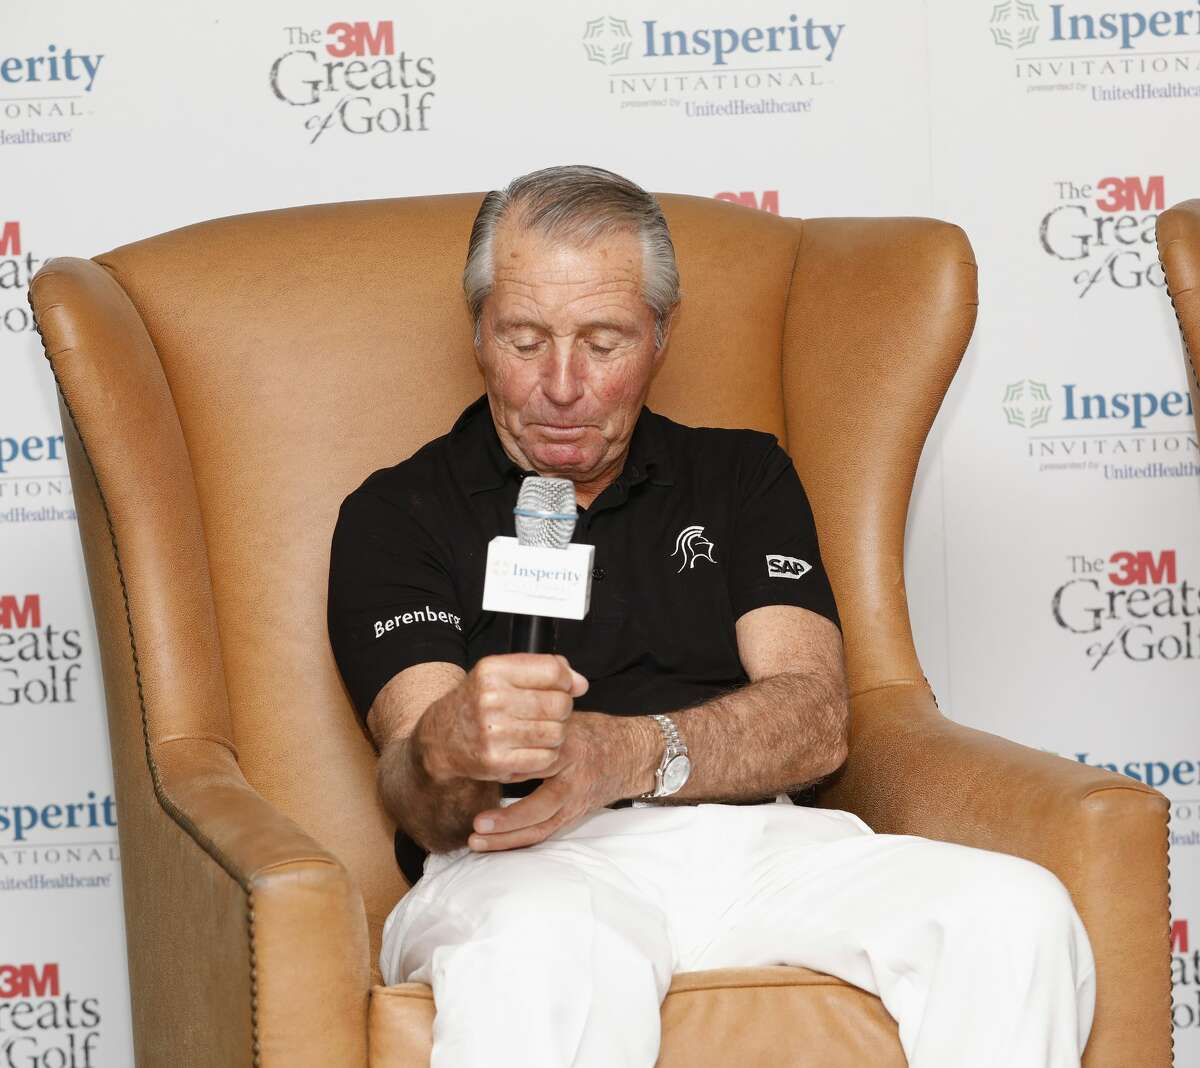 Gary Player is interviewed before the 3M Greats of Golf at the Woodlands Country Club Tournament Course on Saturday, May 6, 2017, in The Woodlands, TX.